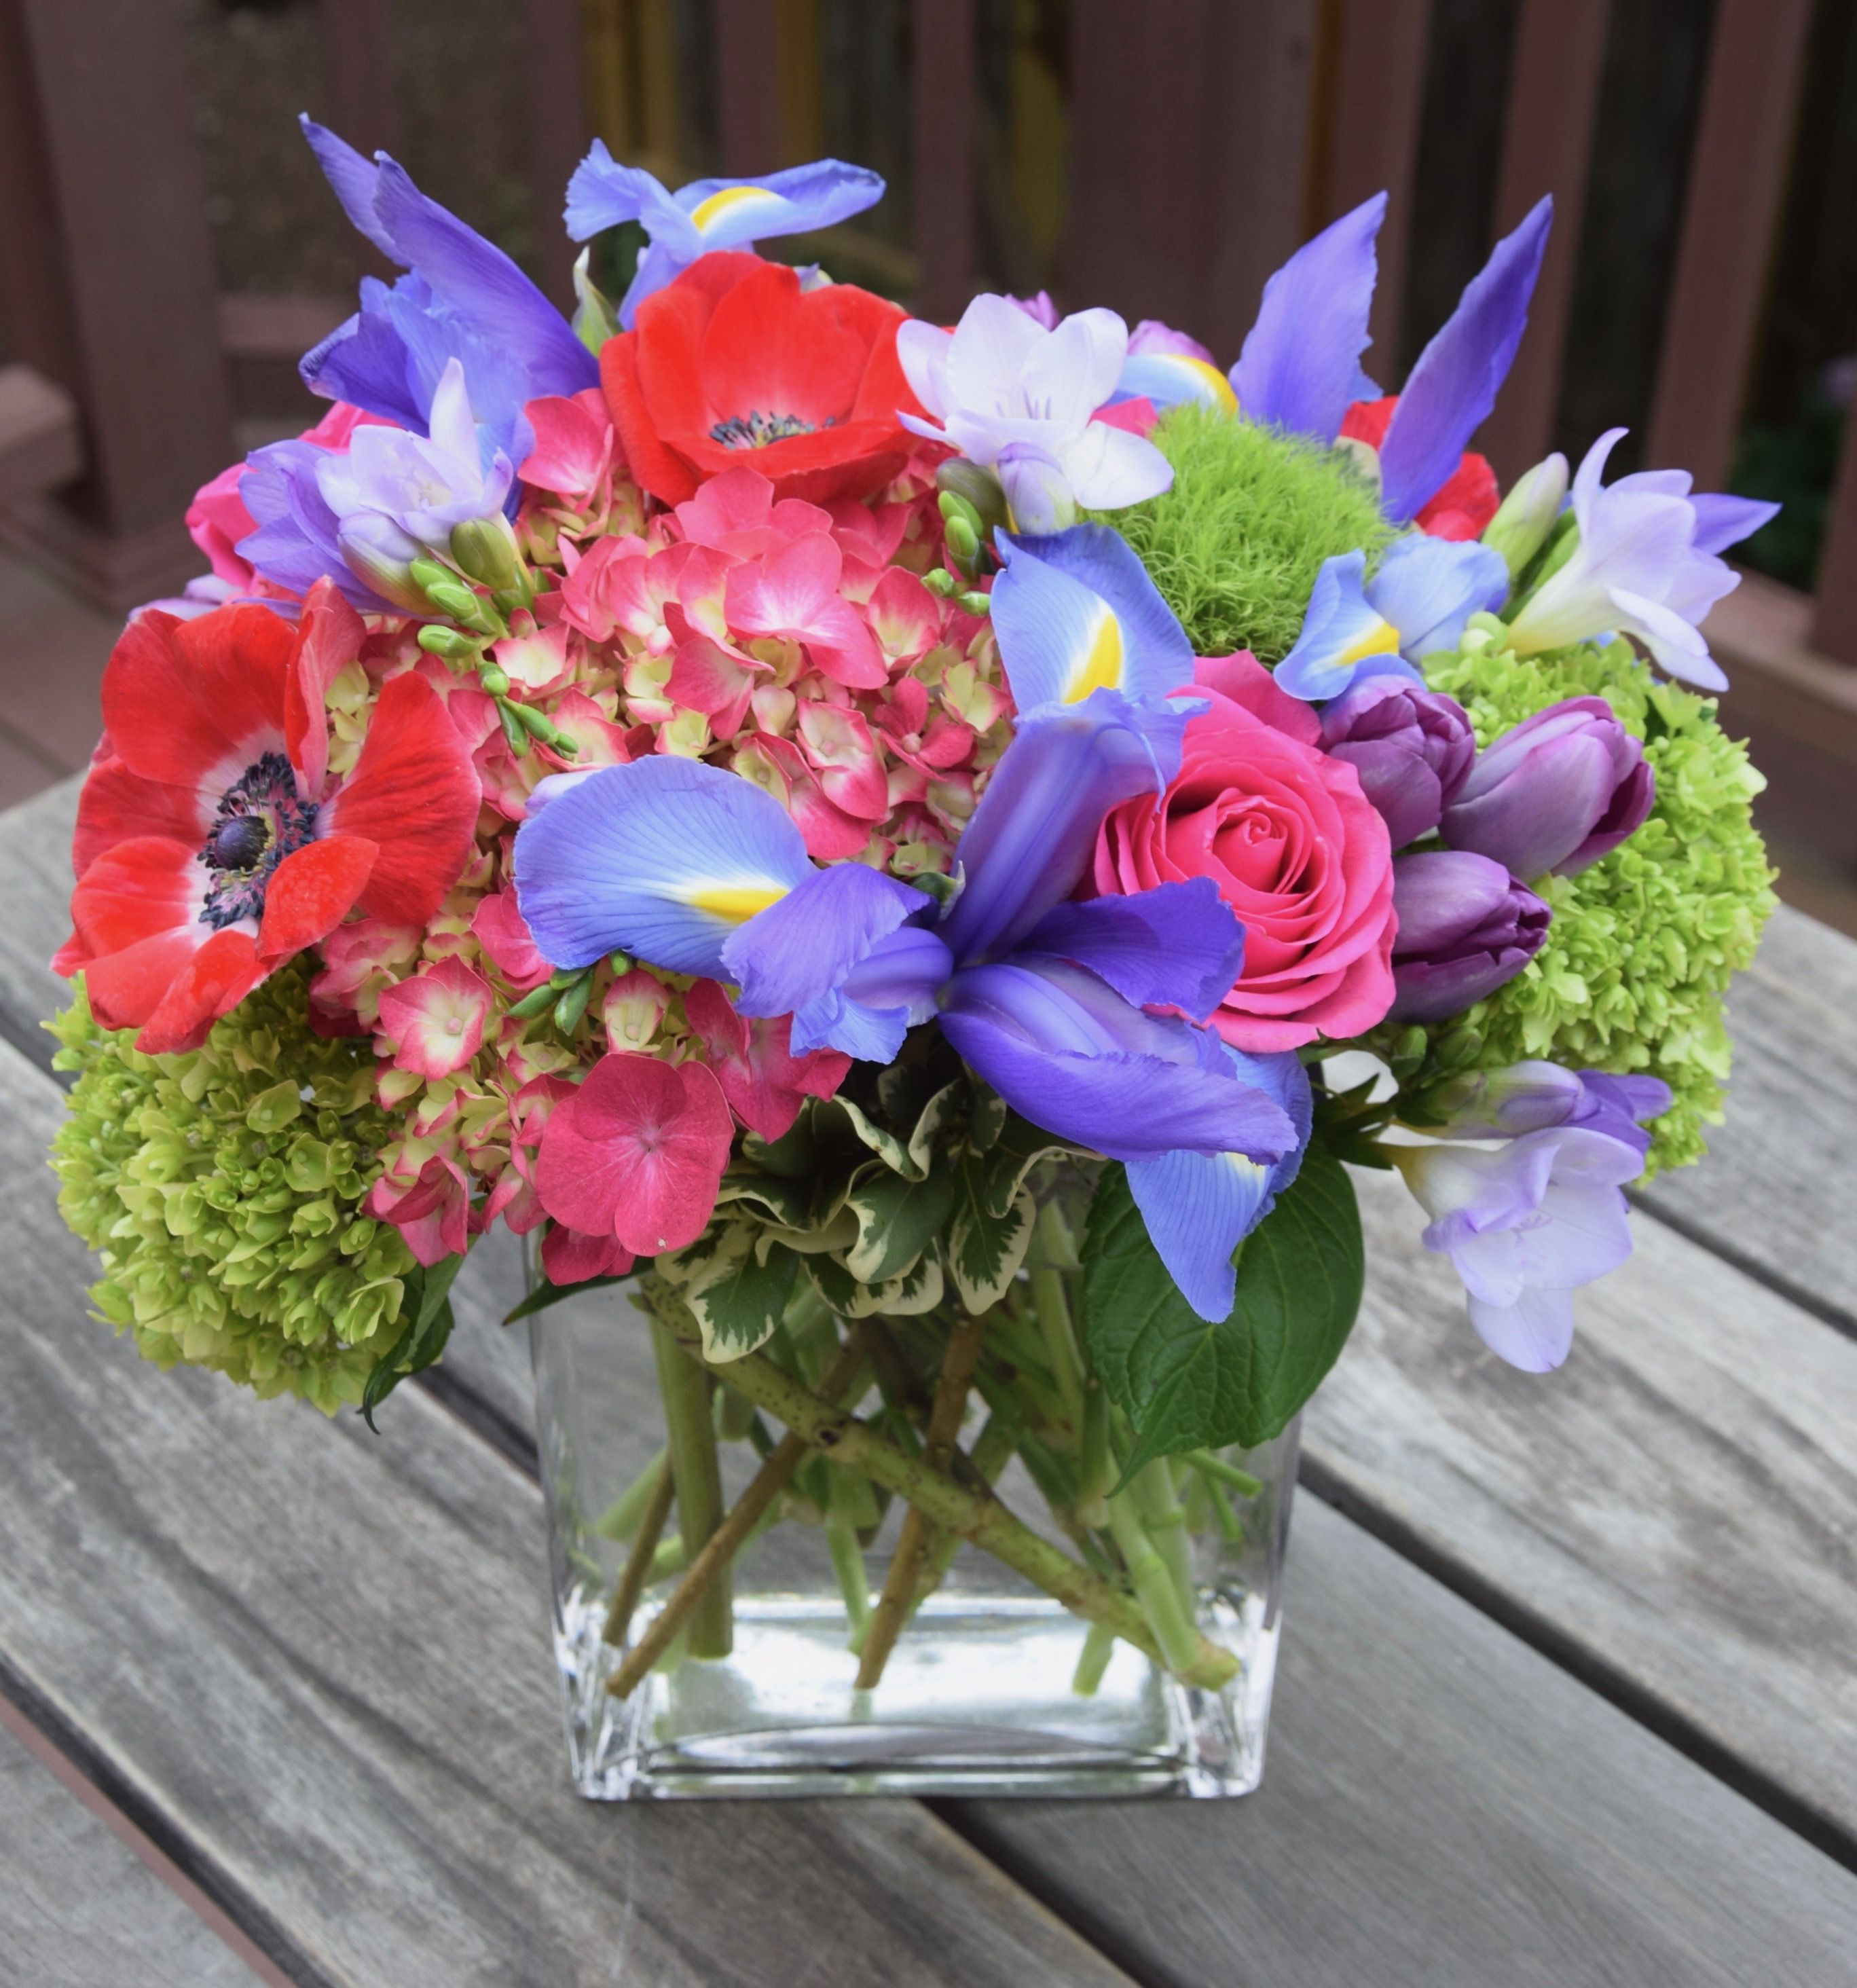 Flower Arrangement With Red Anemones Blue Irises Hydrangeas Tulips Freesia And Roses With Images Flower Arrangements Flower Delivery Fresh Flowers Arrangements